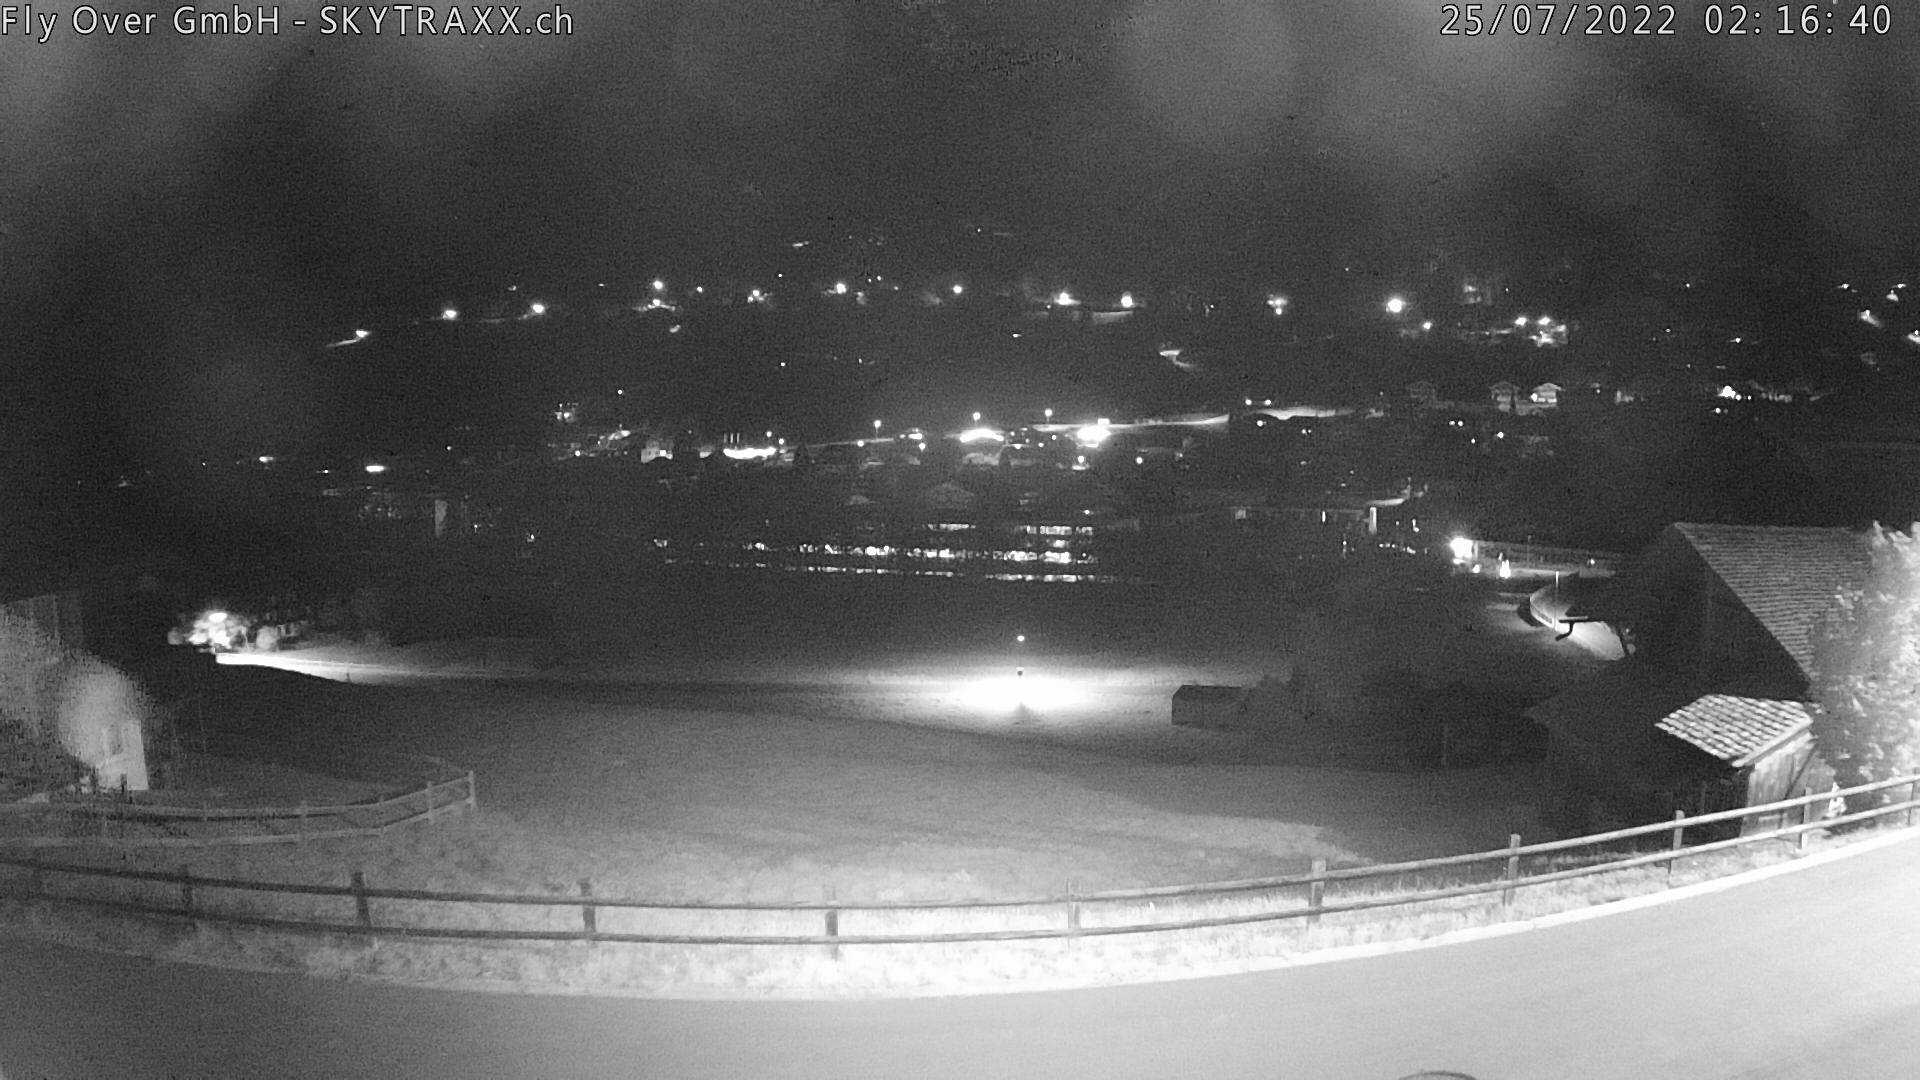 Webcam not available for Grindelwald